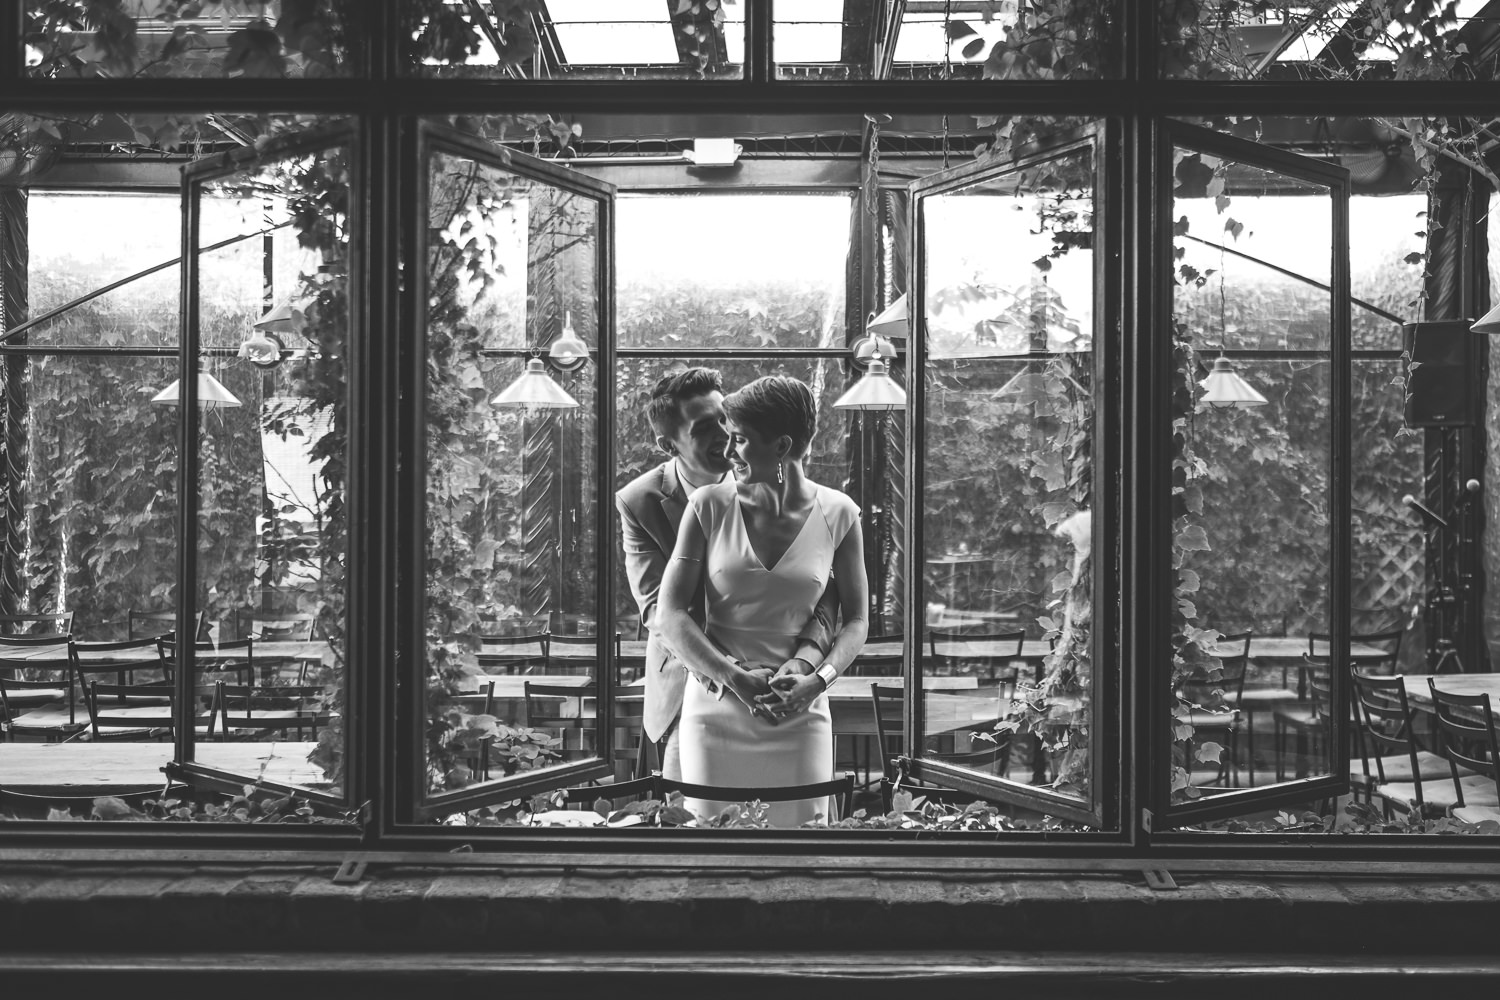 inside looking outside vine covered windows newlyweds in middle window hugging